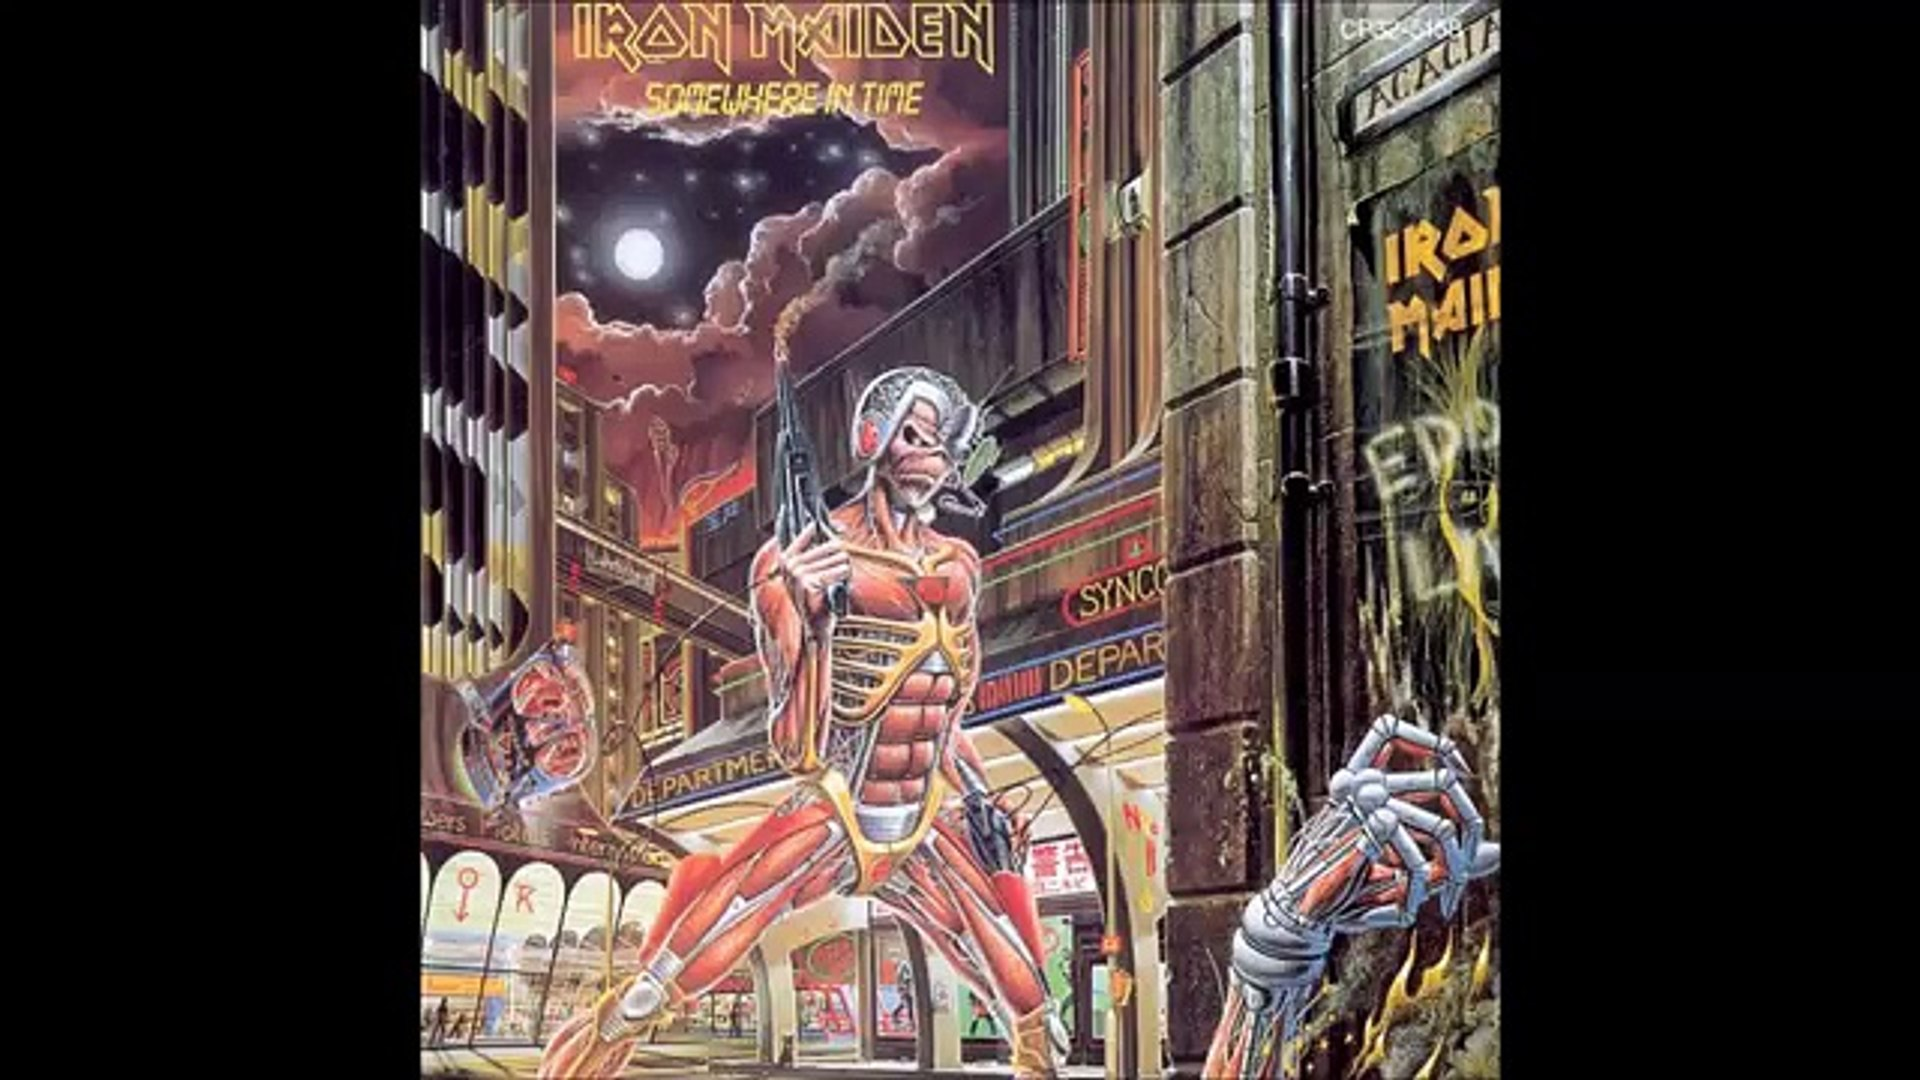 Iron Maiden Caught Somewhere In Time